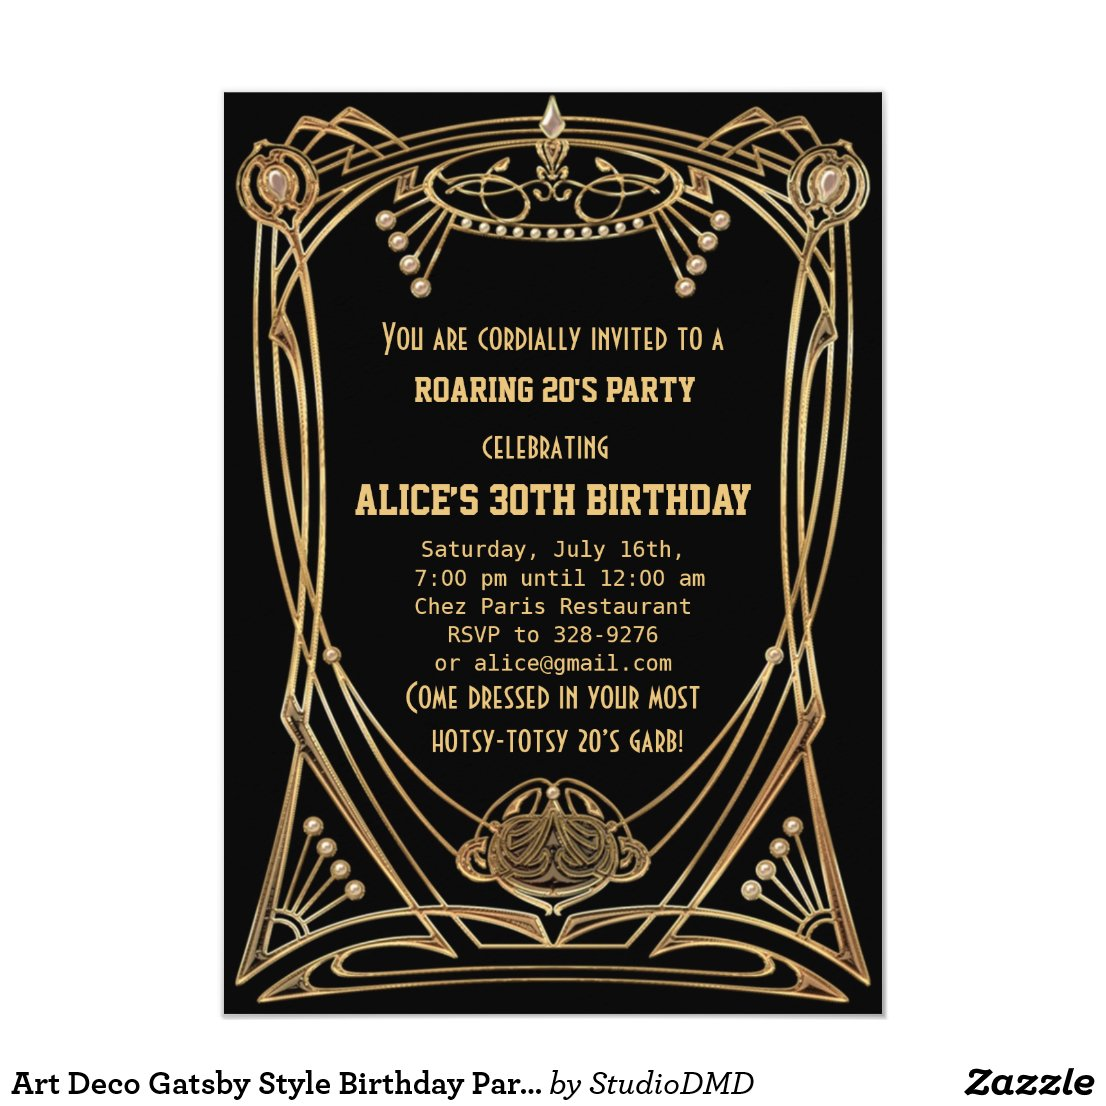 1920's Great Gatsby Art Deco Birthday Invitations - Retro Invites